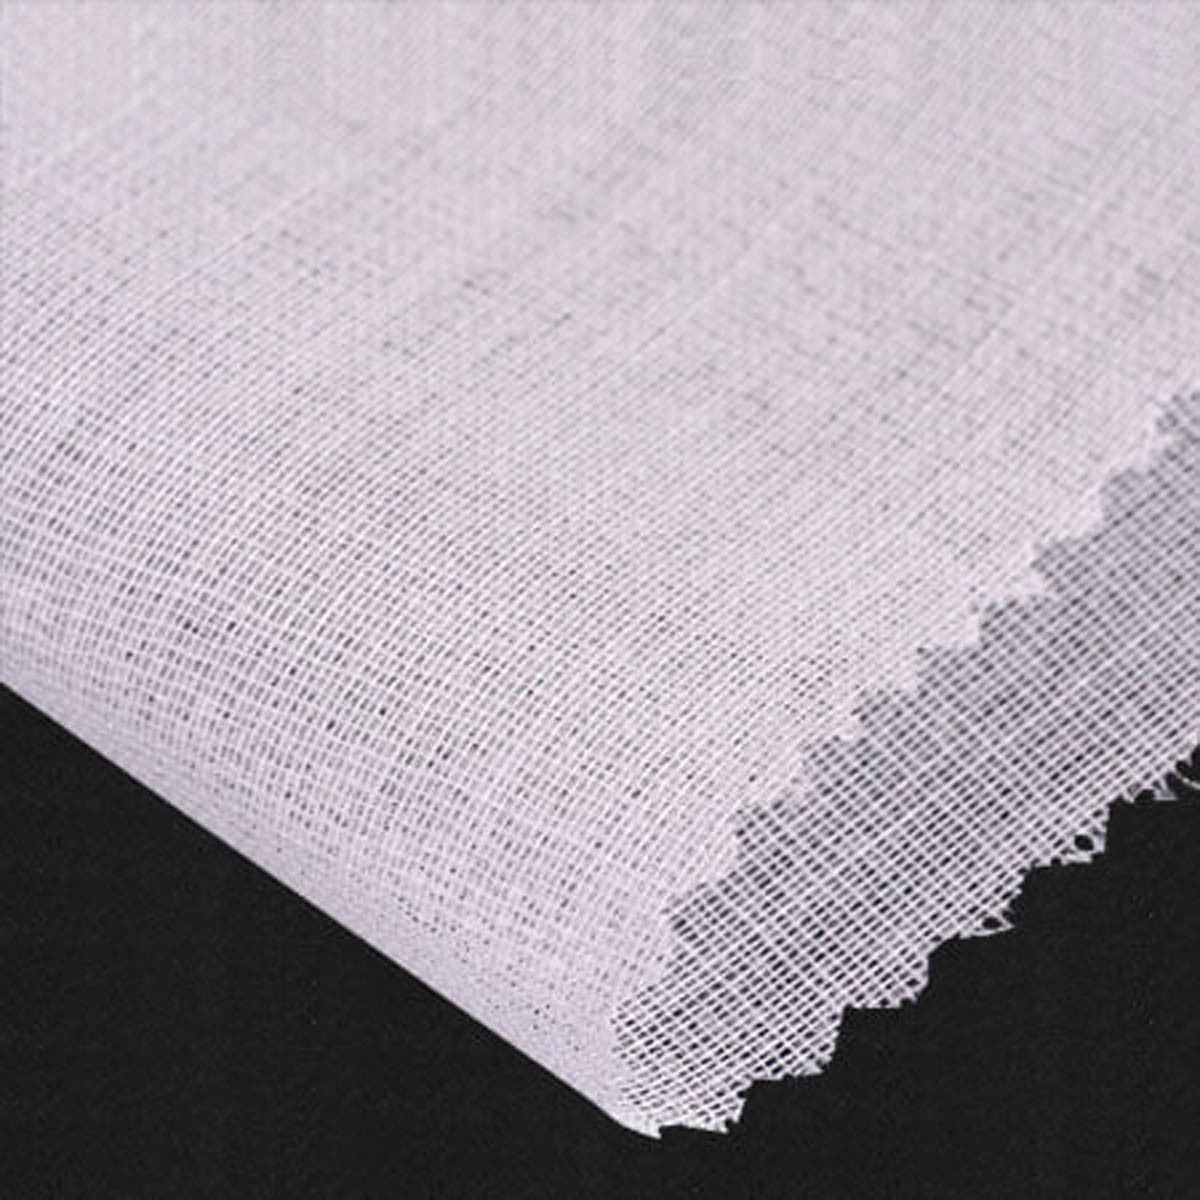 Woven Fusible Stabiliser/Interlining/Interfacing - Medium - MRA - 112cm wide